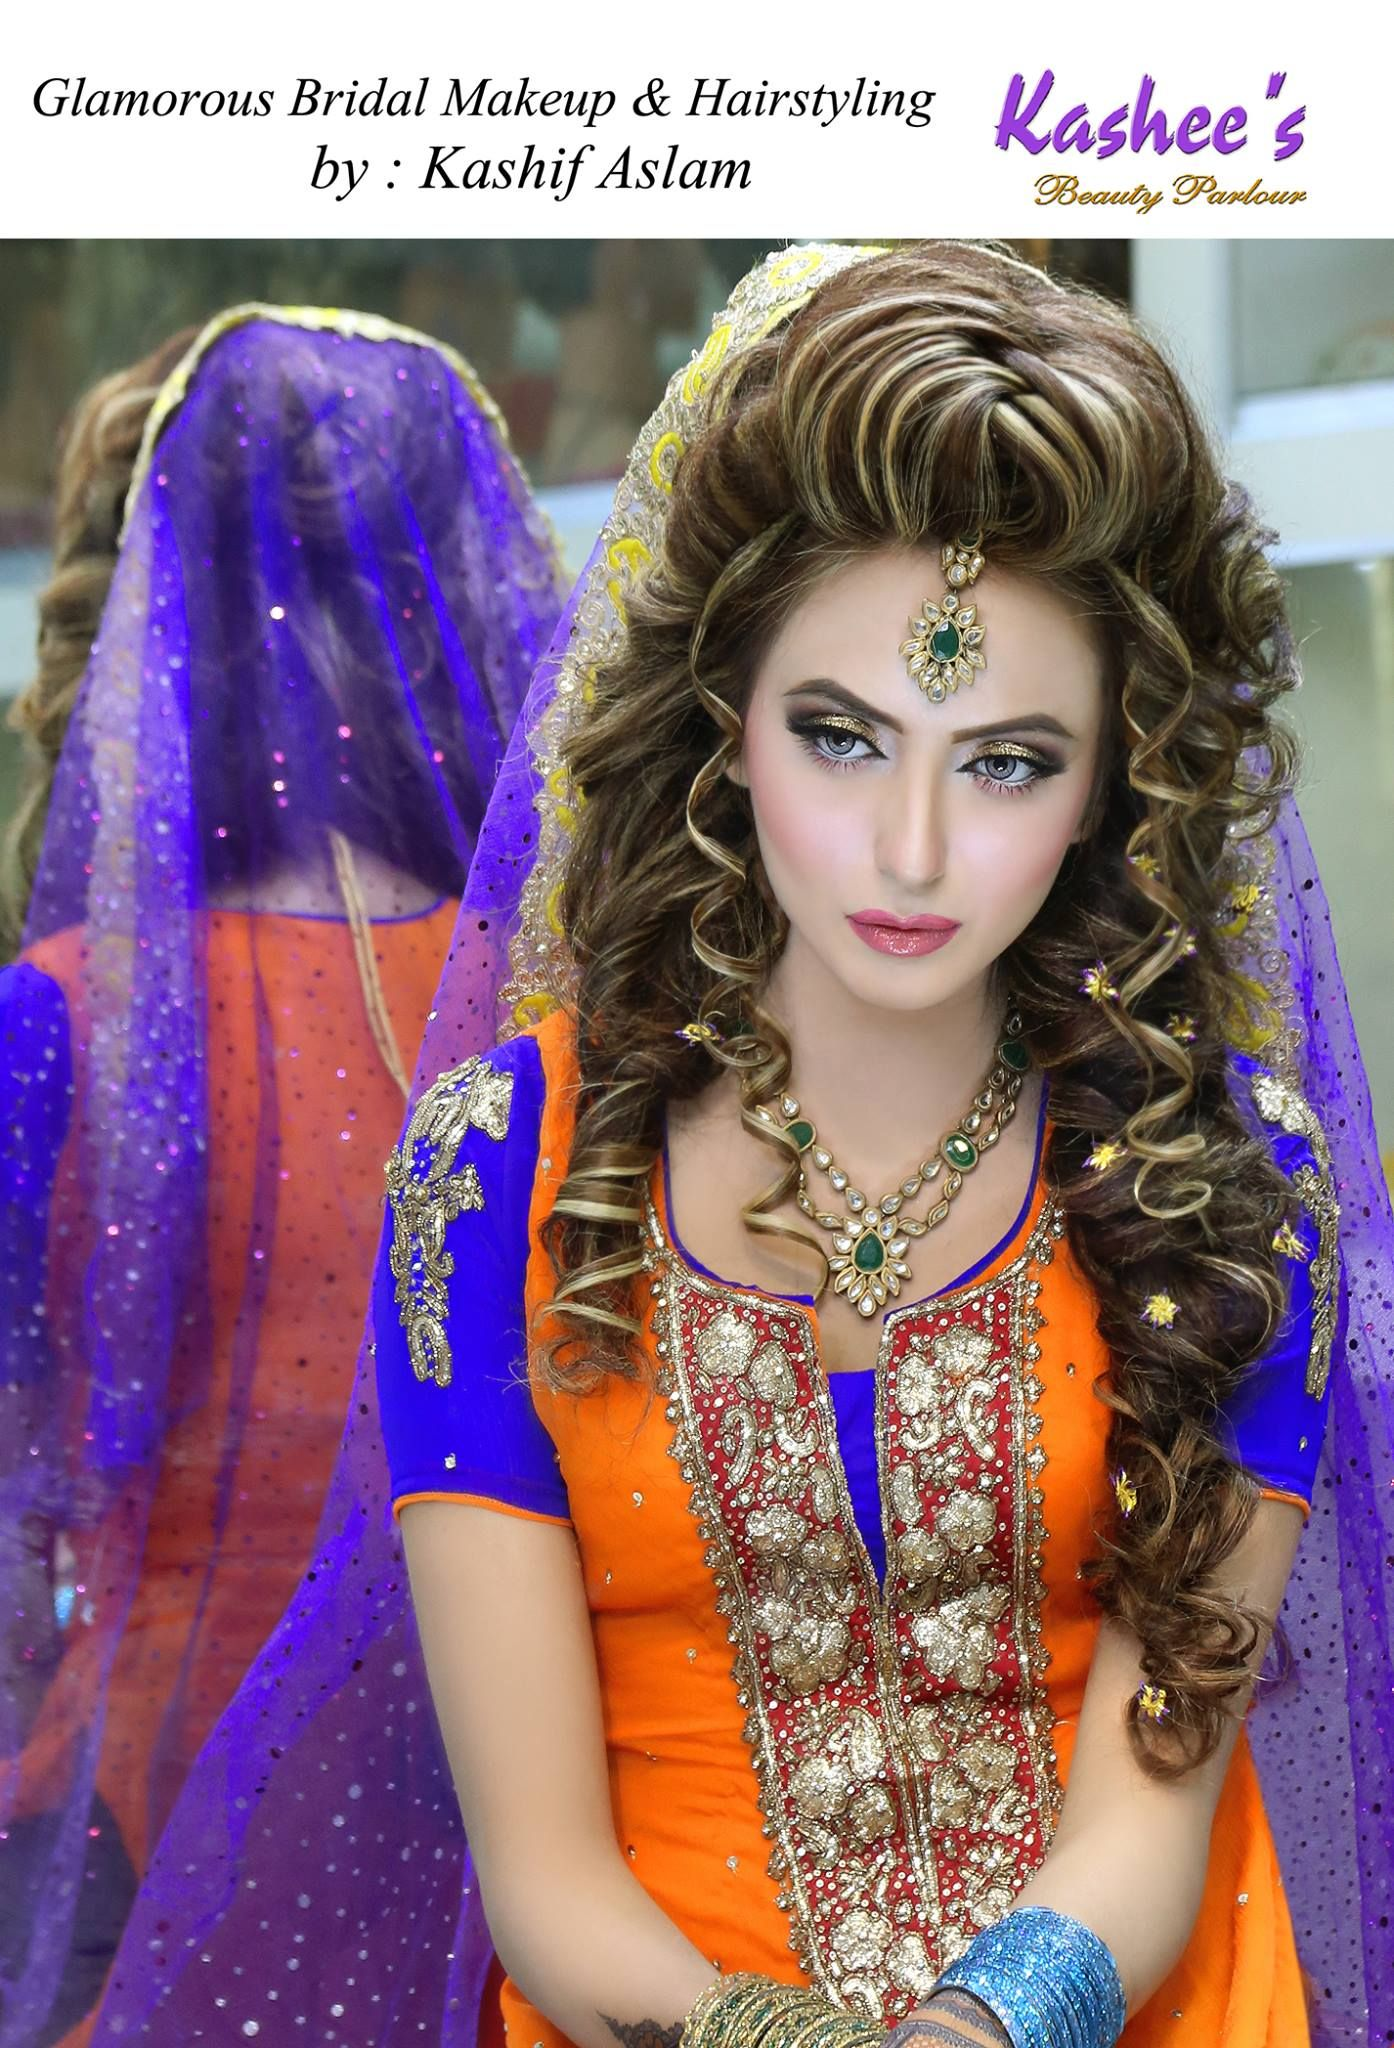 parlour hair style makeup by kashif aslam by kashee s parlour 5657